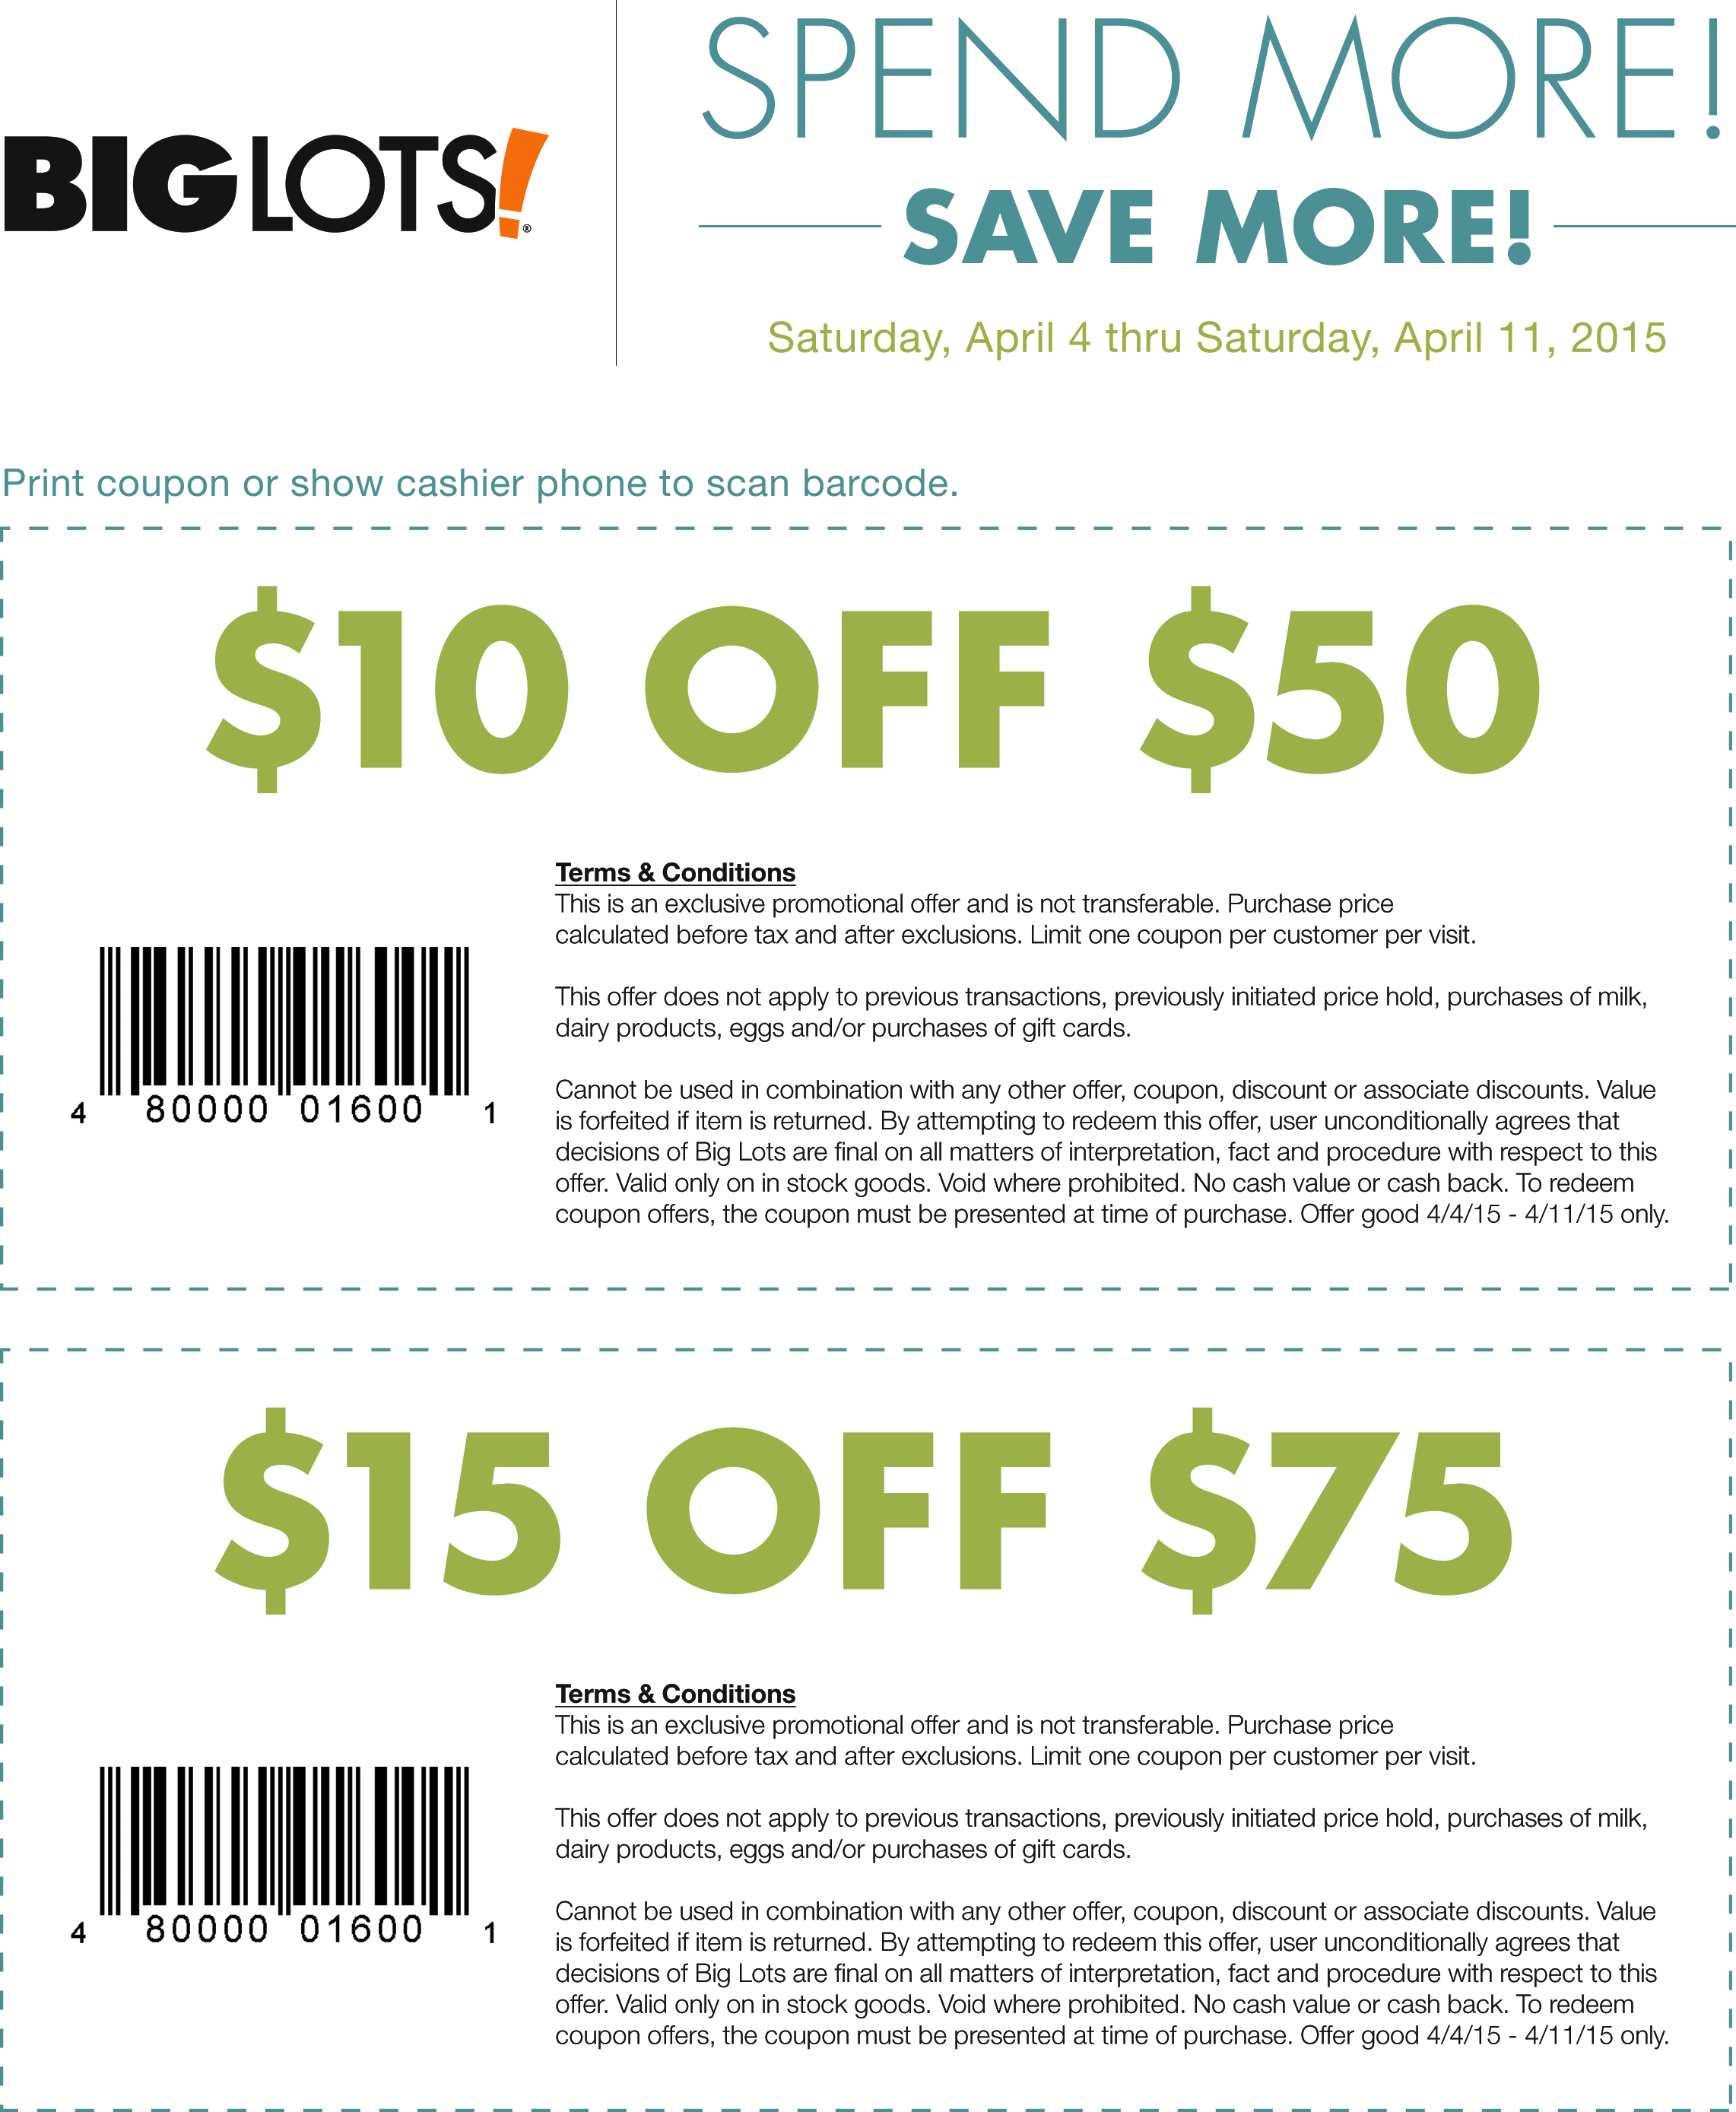 American Eagle Coupons Printable (74+ Images In Collection) Page 2 - Free Printable American Eagle Coupons